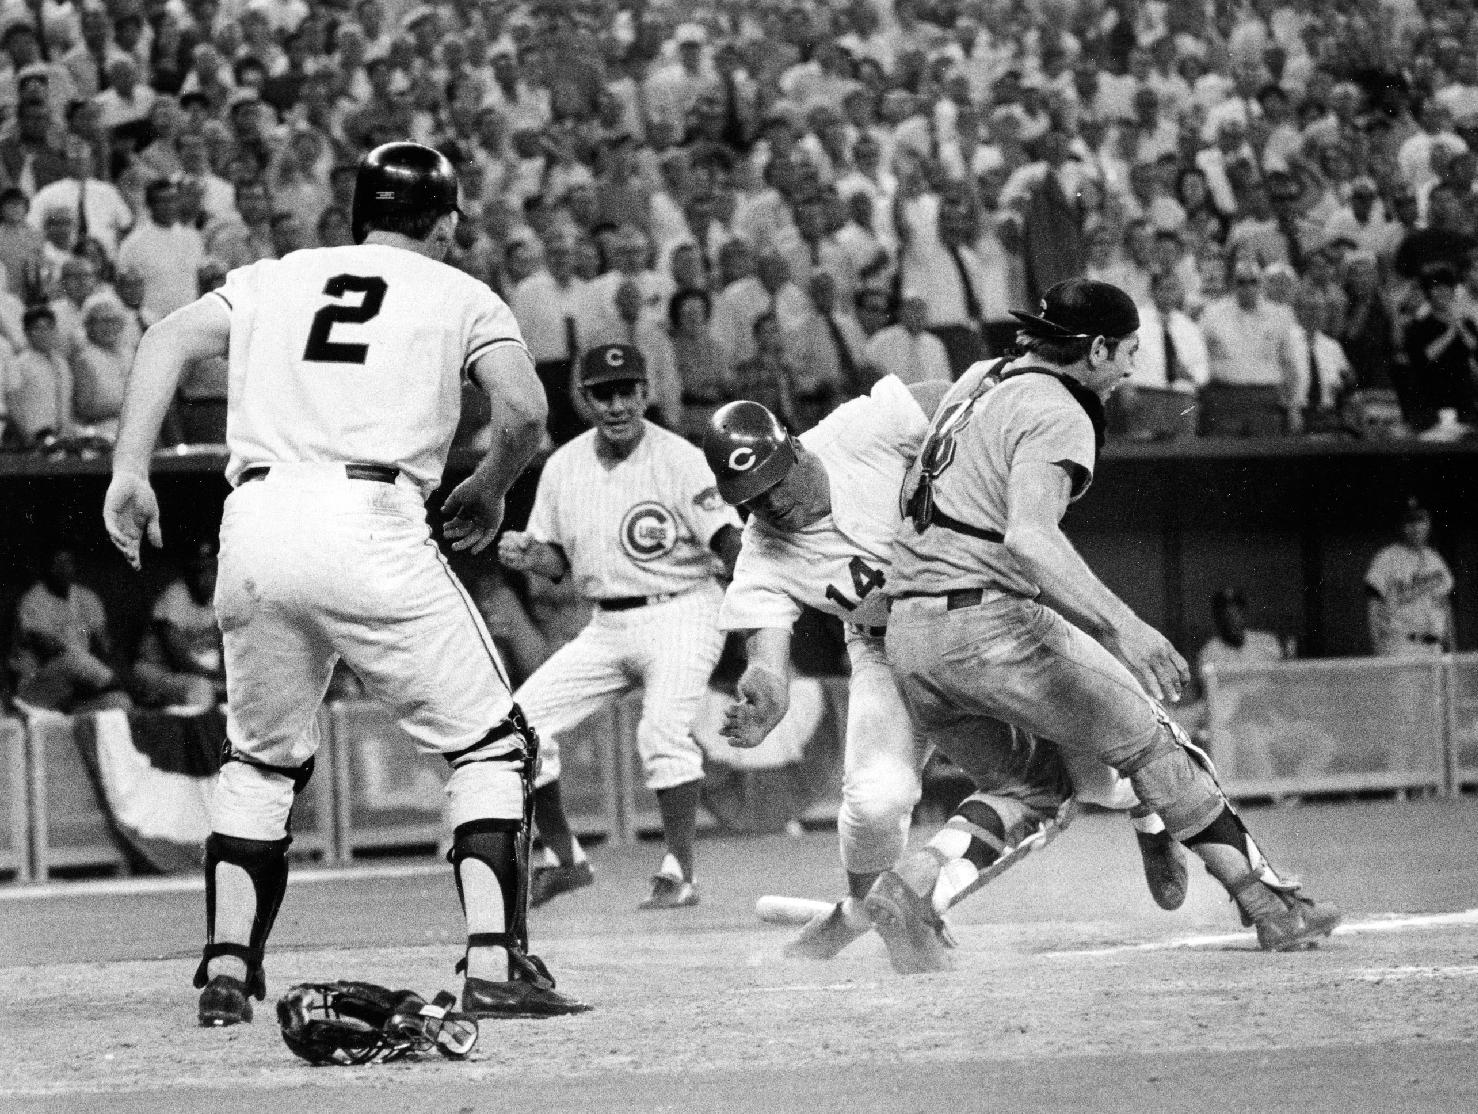 In this July 14, 1970 file photo, Cincinnati Reds' Pete Rose (14) slams into Cleveland Indians' catcher Ray Fosse to score a controversial game-winning run for the National League team in the 12th inning of the 1970 All-Star game in Cincinnati. Fosse suffered a fractured shoulder in the collision. Looking on are the Reds' third base coach Leo Durocher, and Cincinnati Reds' next hitter Dick Dietz (2). Major League Baseball plans to eliminate home plate collisions, possibly as soon as next season but no later than by 2015. New York Mets general manager Sandy Alderson, chairman of the rules committee, made the announcement Wednesday, Dec. 11, 2013 at the winter meetings. Player safety and concern over concussions were major factors in the decision